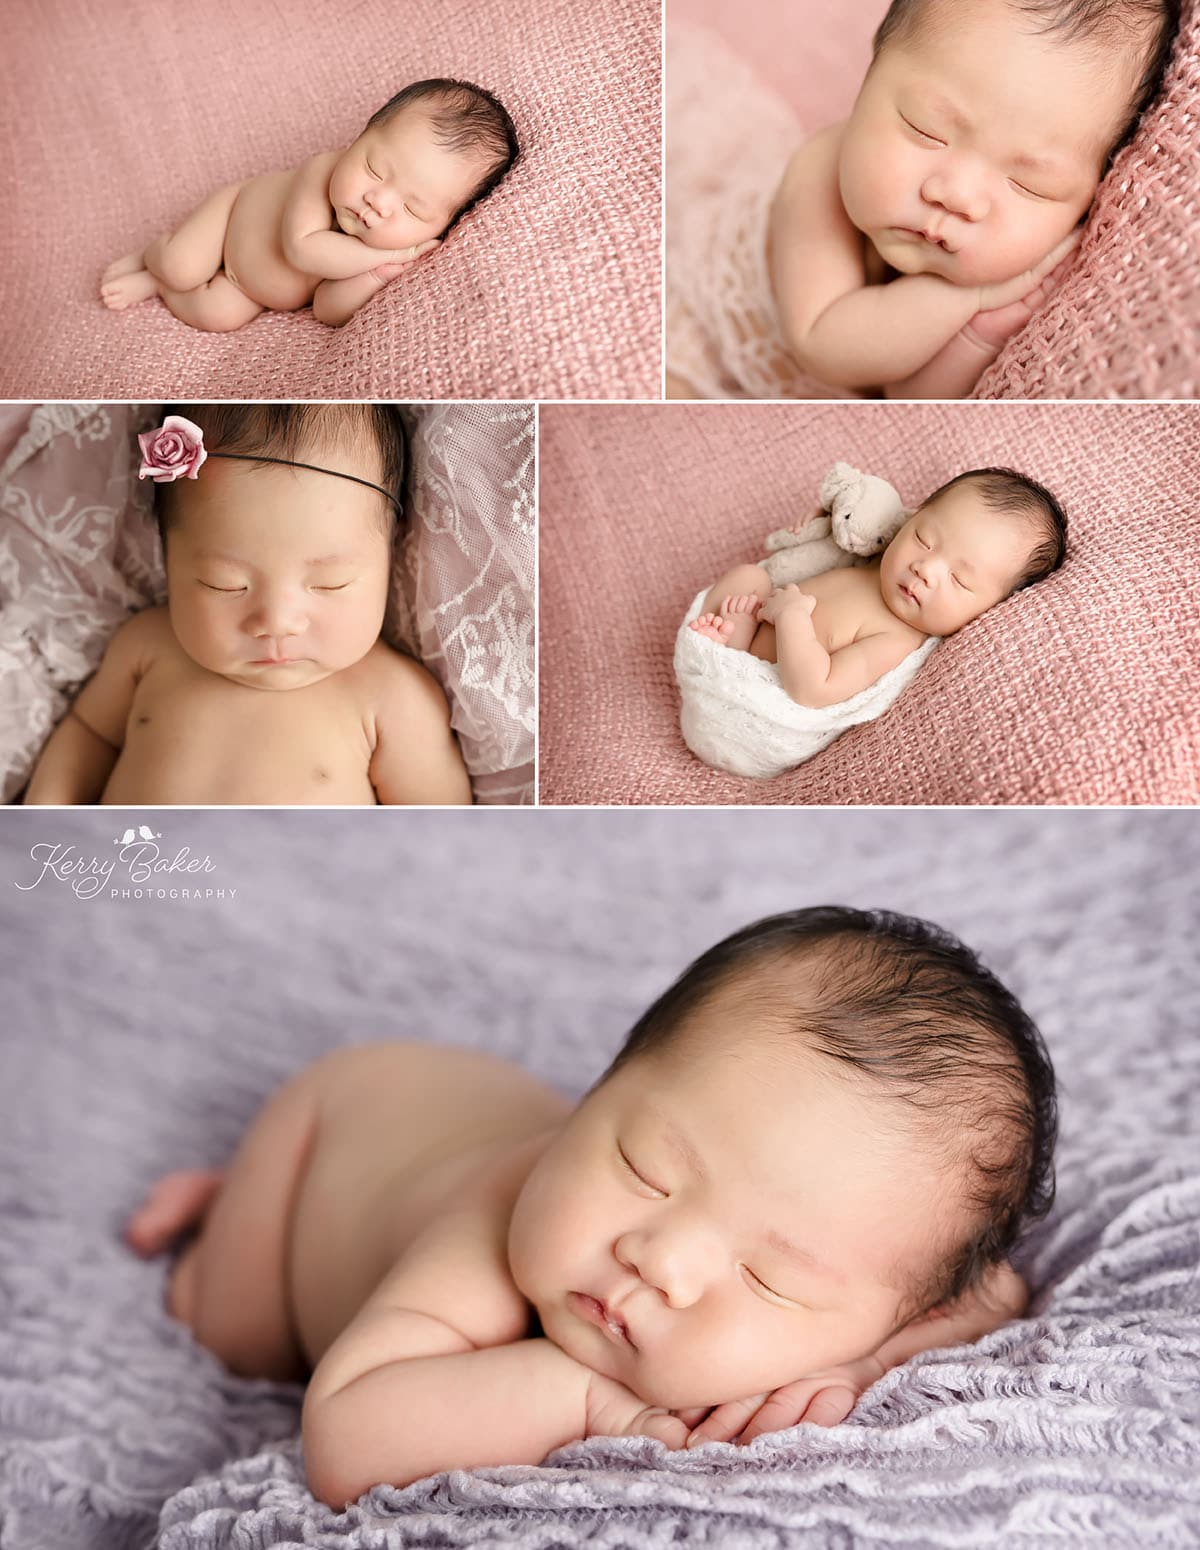 newborn photos of beautiful asian baby girl 12 days